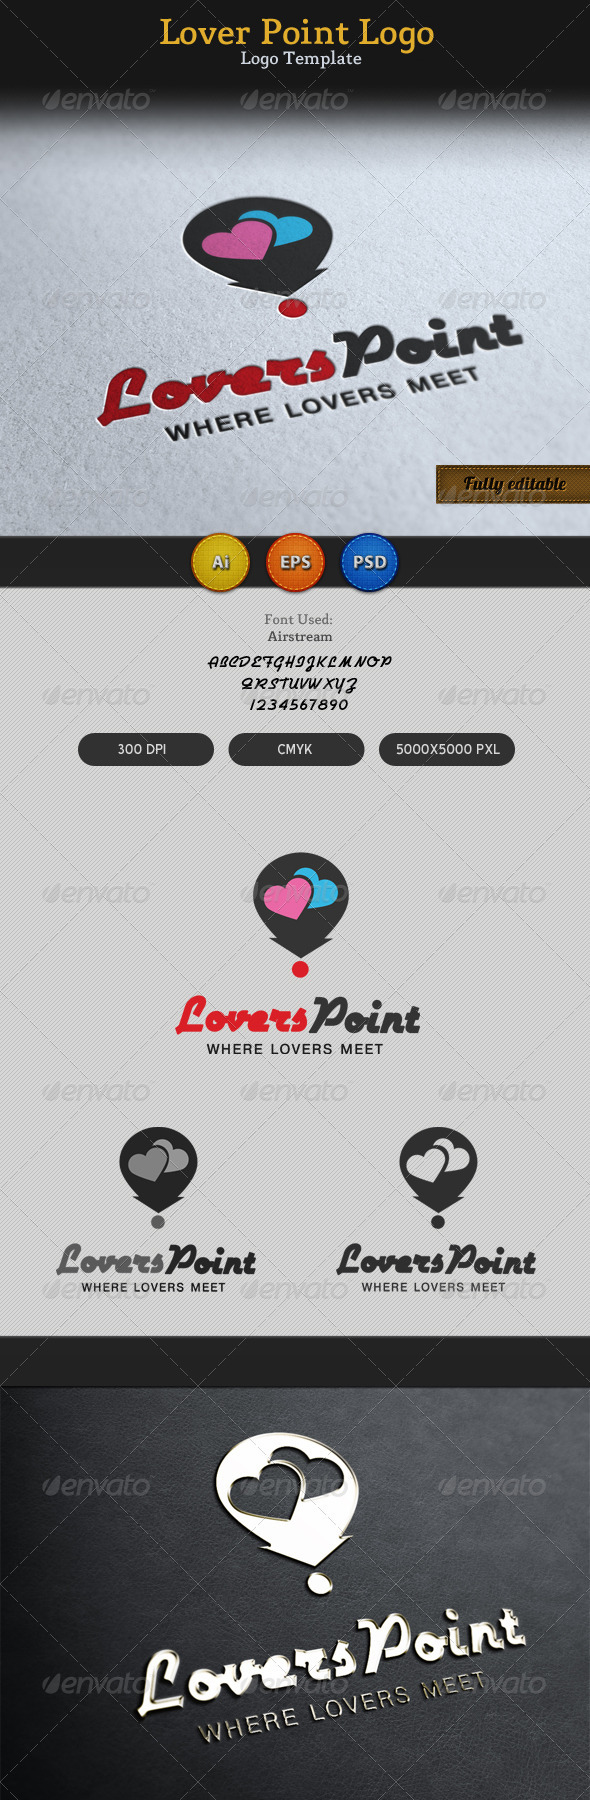 Lovers Point Locator Logo - Vector Abstract